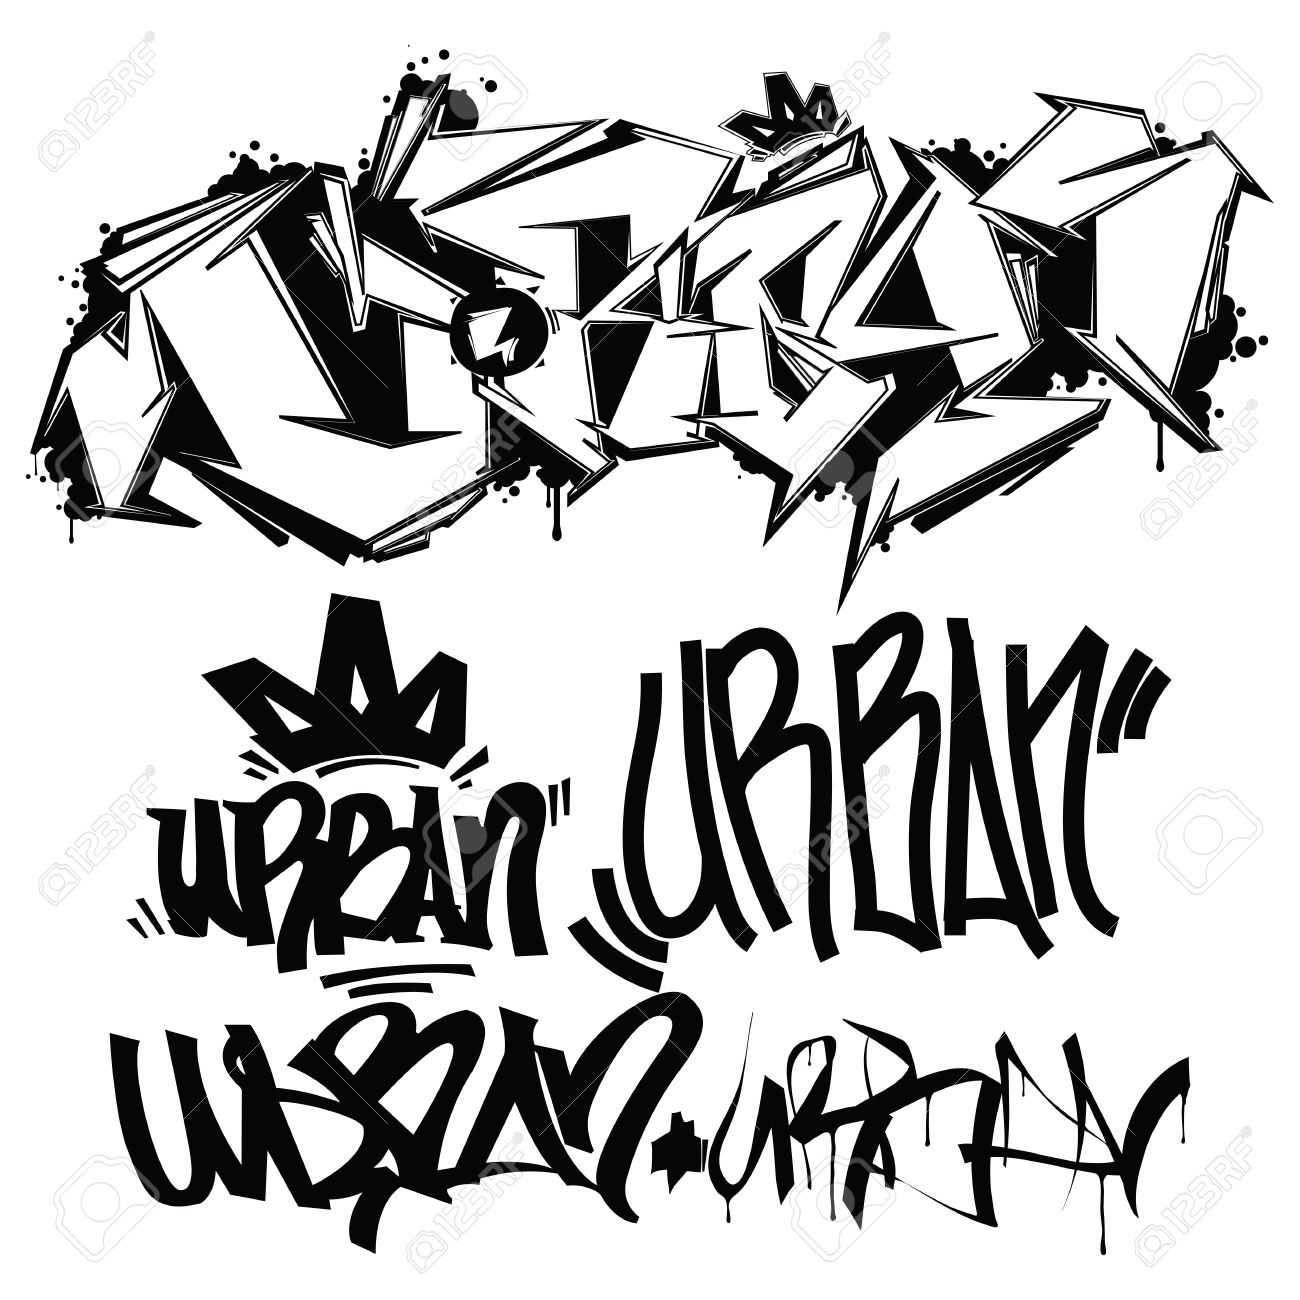 7f0df97e4 Urban Typography Graffiti Tags Royalty Free Cliparts, Vectors, And ...